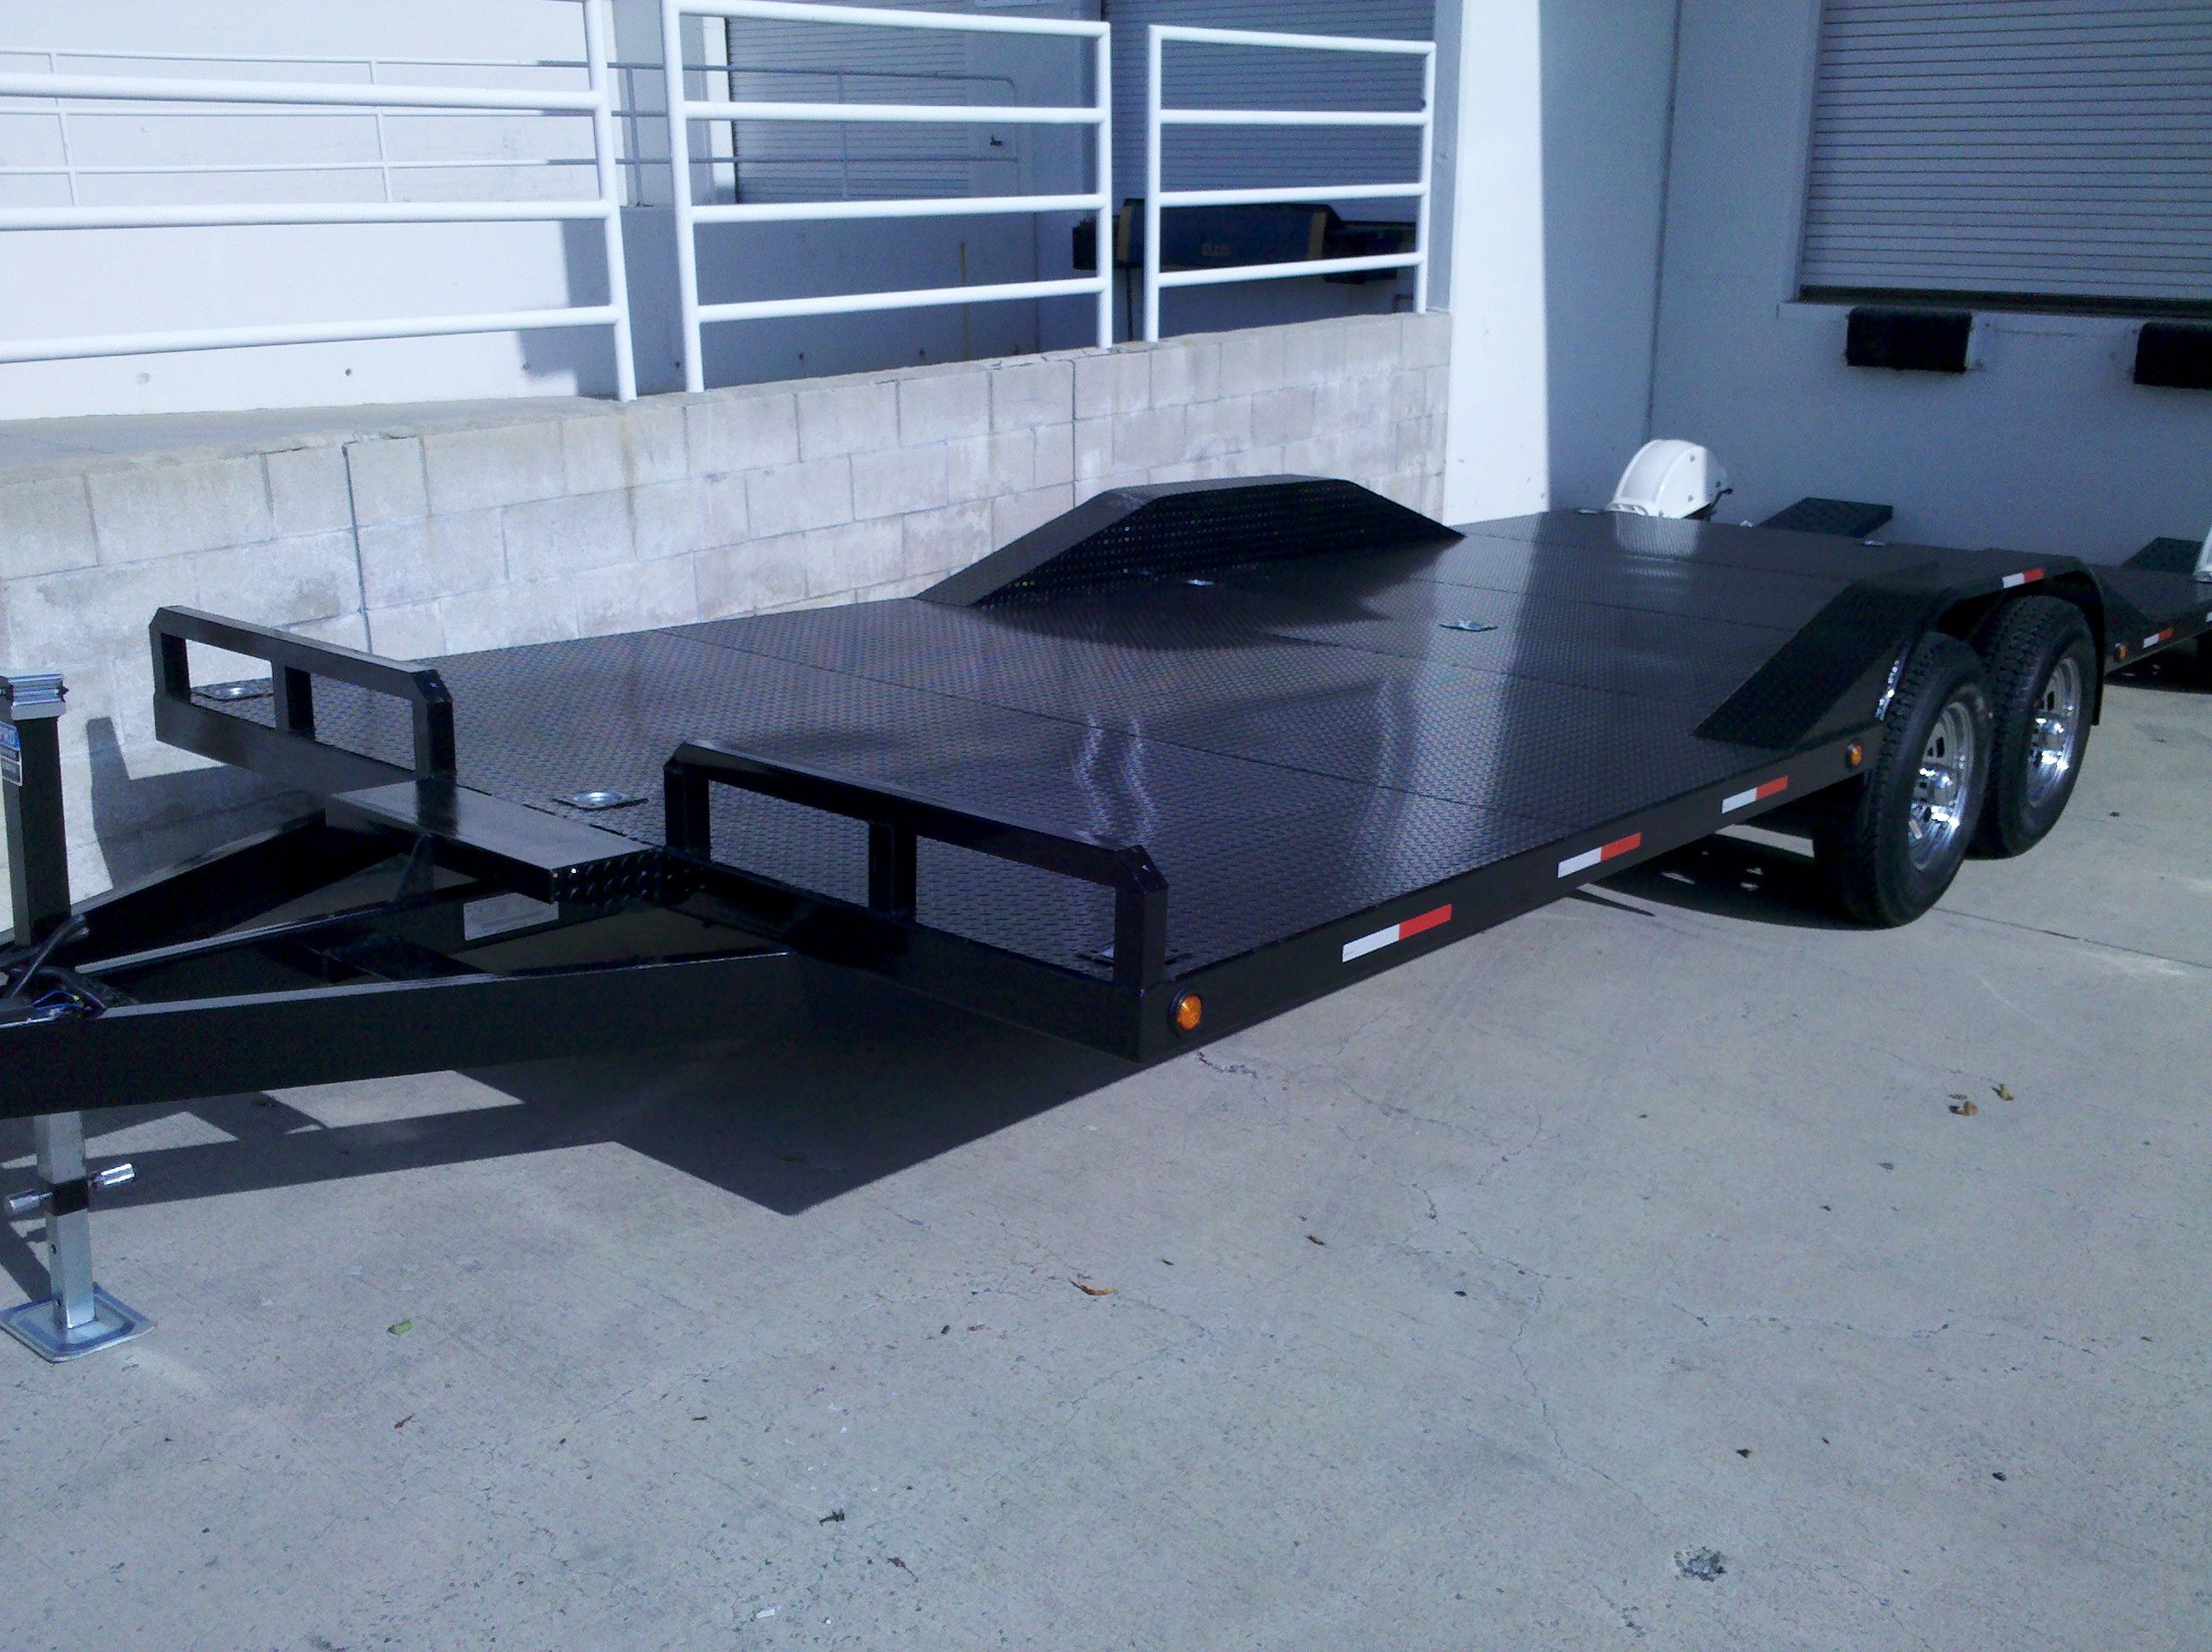 20 Vehicle Hauling Flatbed Trailer Please Call Greg Piazza At 949 280 0432 Www Piazzascustomtrailers Com Flatbed Trailer Hauling Trailers Car Trailer